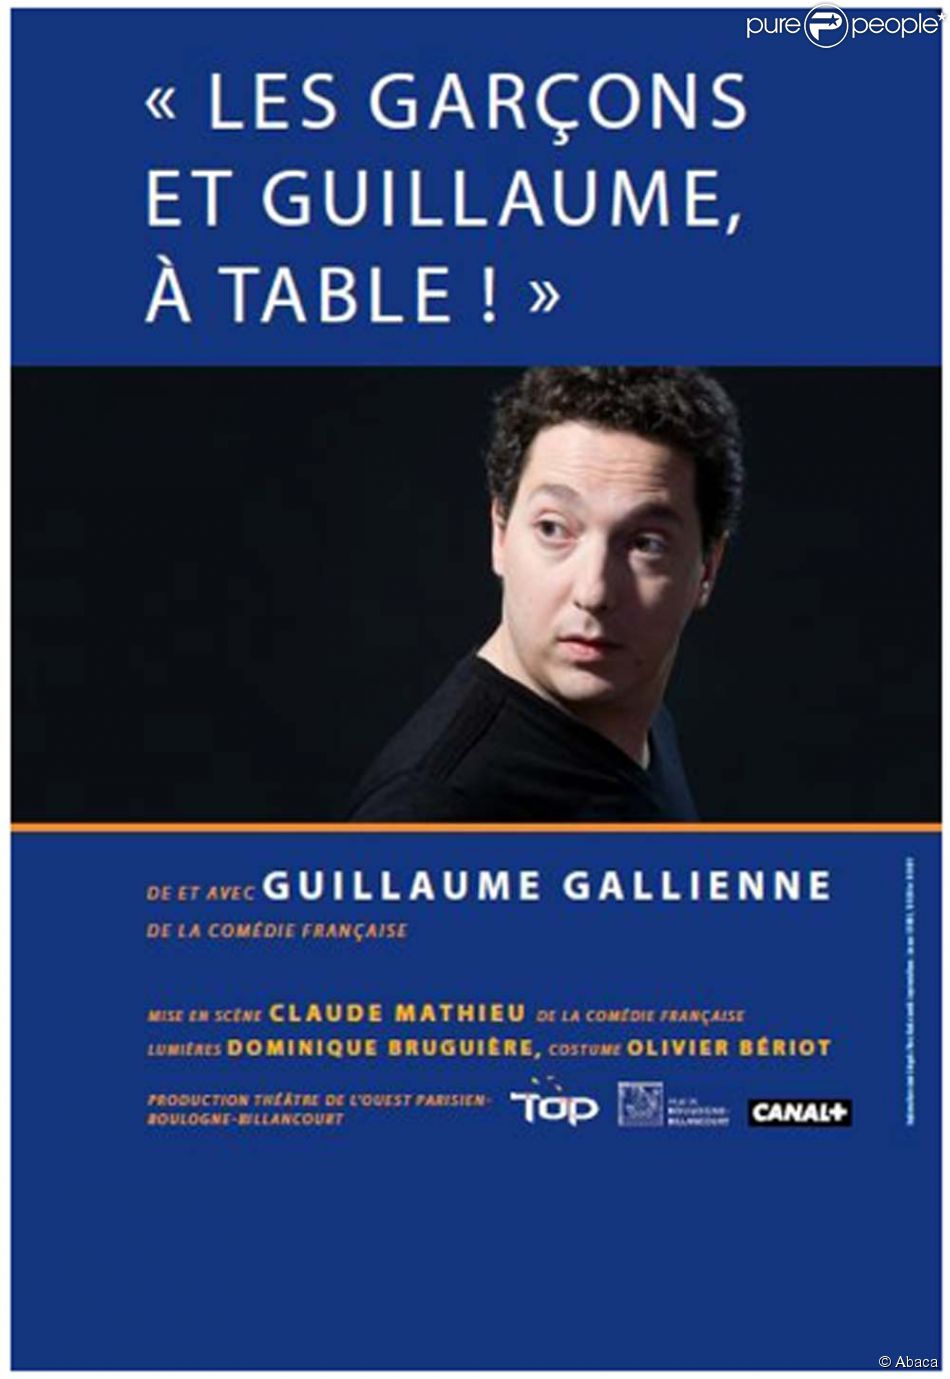 Les gar ons et guillaume table au th tre de l - Guillaume et les garcons a table trailer ...